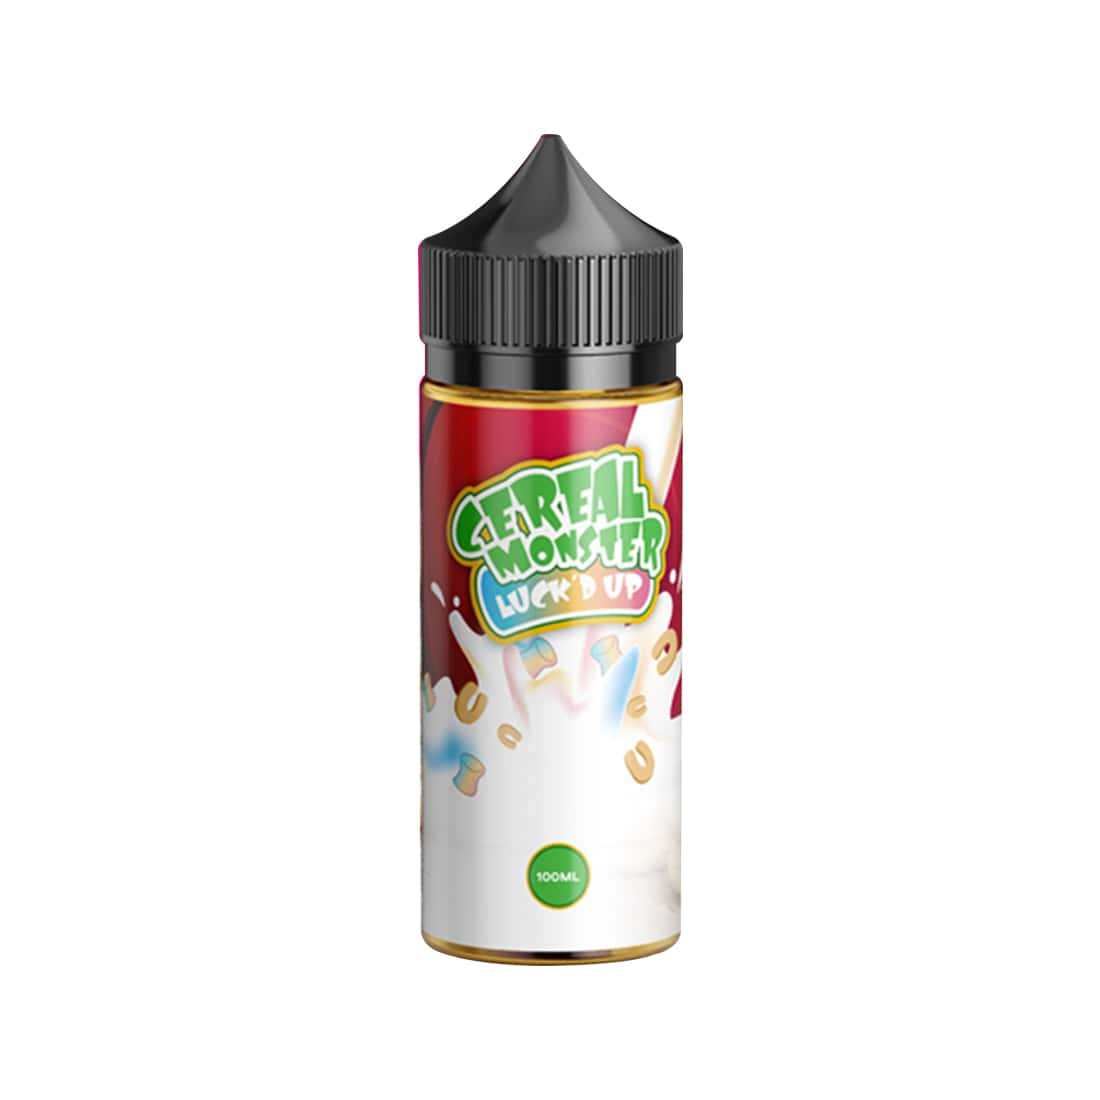 Photo de E liquide Ferrum City Cereal Monster Luck'd Up 0 mg 100 ml